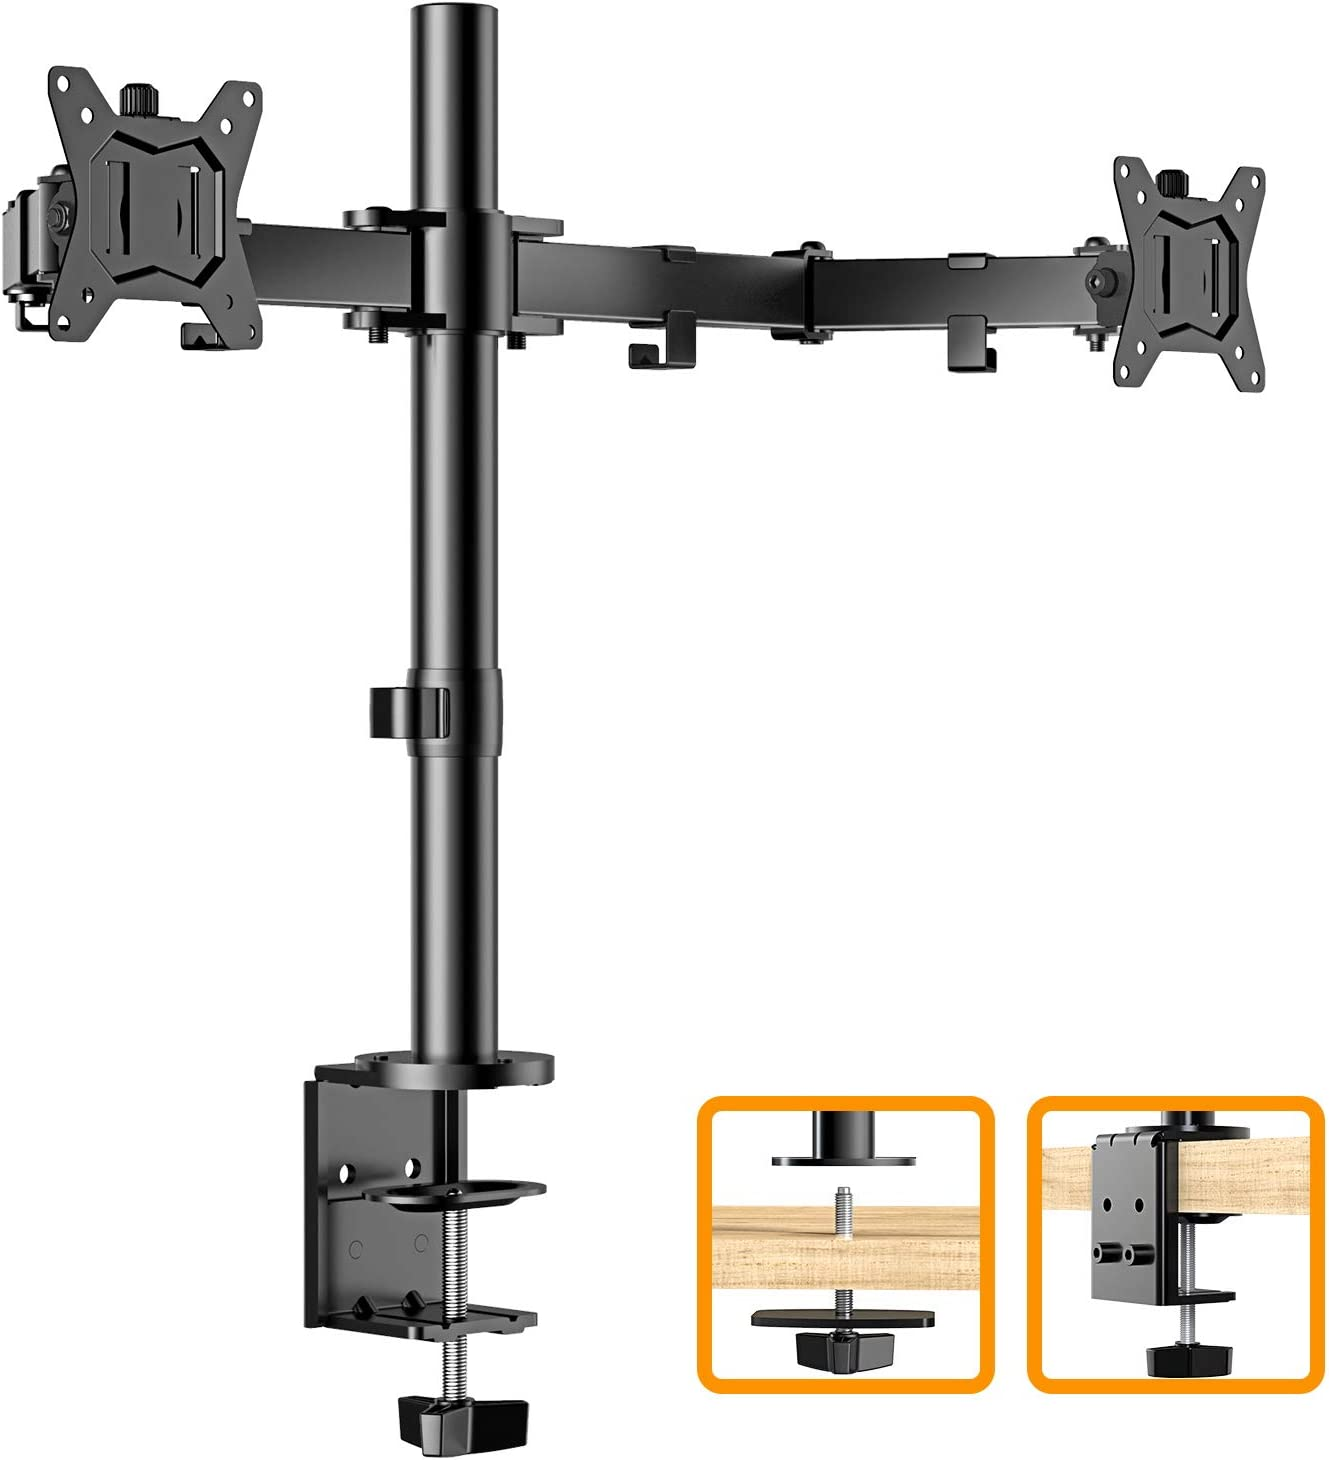 "ErGear 17-32"" Dual Monitor Stand Mount, Heavy-Duty Fully Adjustable Desk Clamp Arms for Computer Screens, Loads up to 17.6lbs per arm w/Swivel and Tilt, 75/100mm VESA, Black - EGCM1"